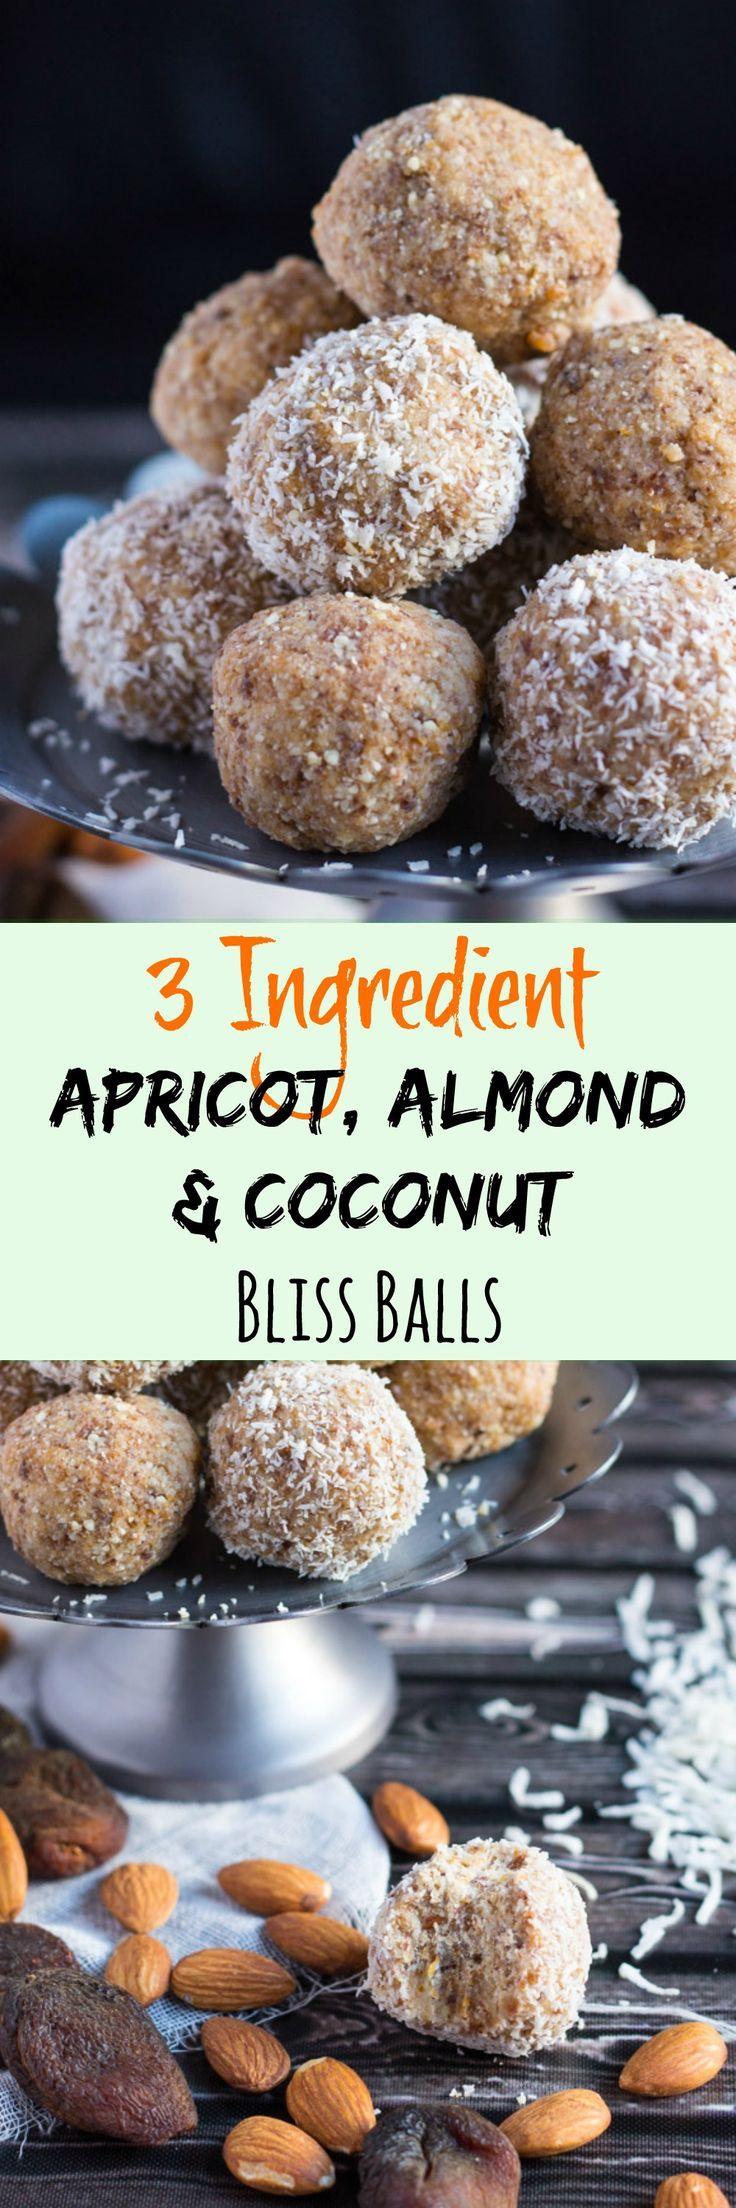 These 3 Ingredient Apricot Almond and Coconut Bliss Balls are quick to make, and perfect to have in the fridge for emergency snacking.